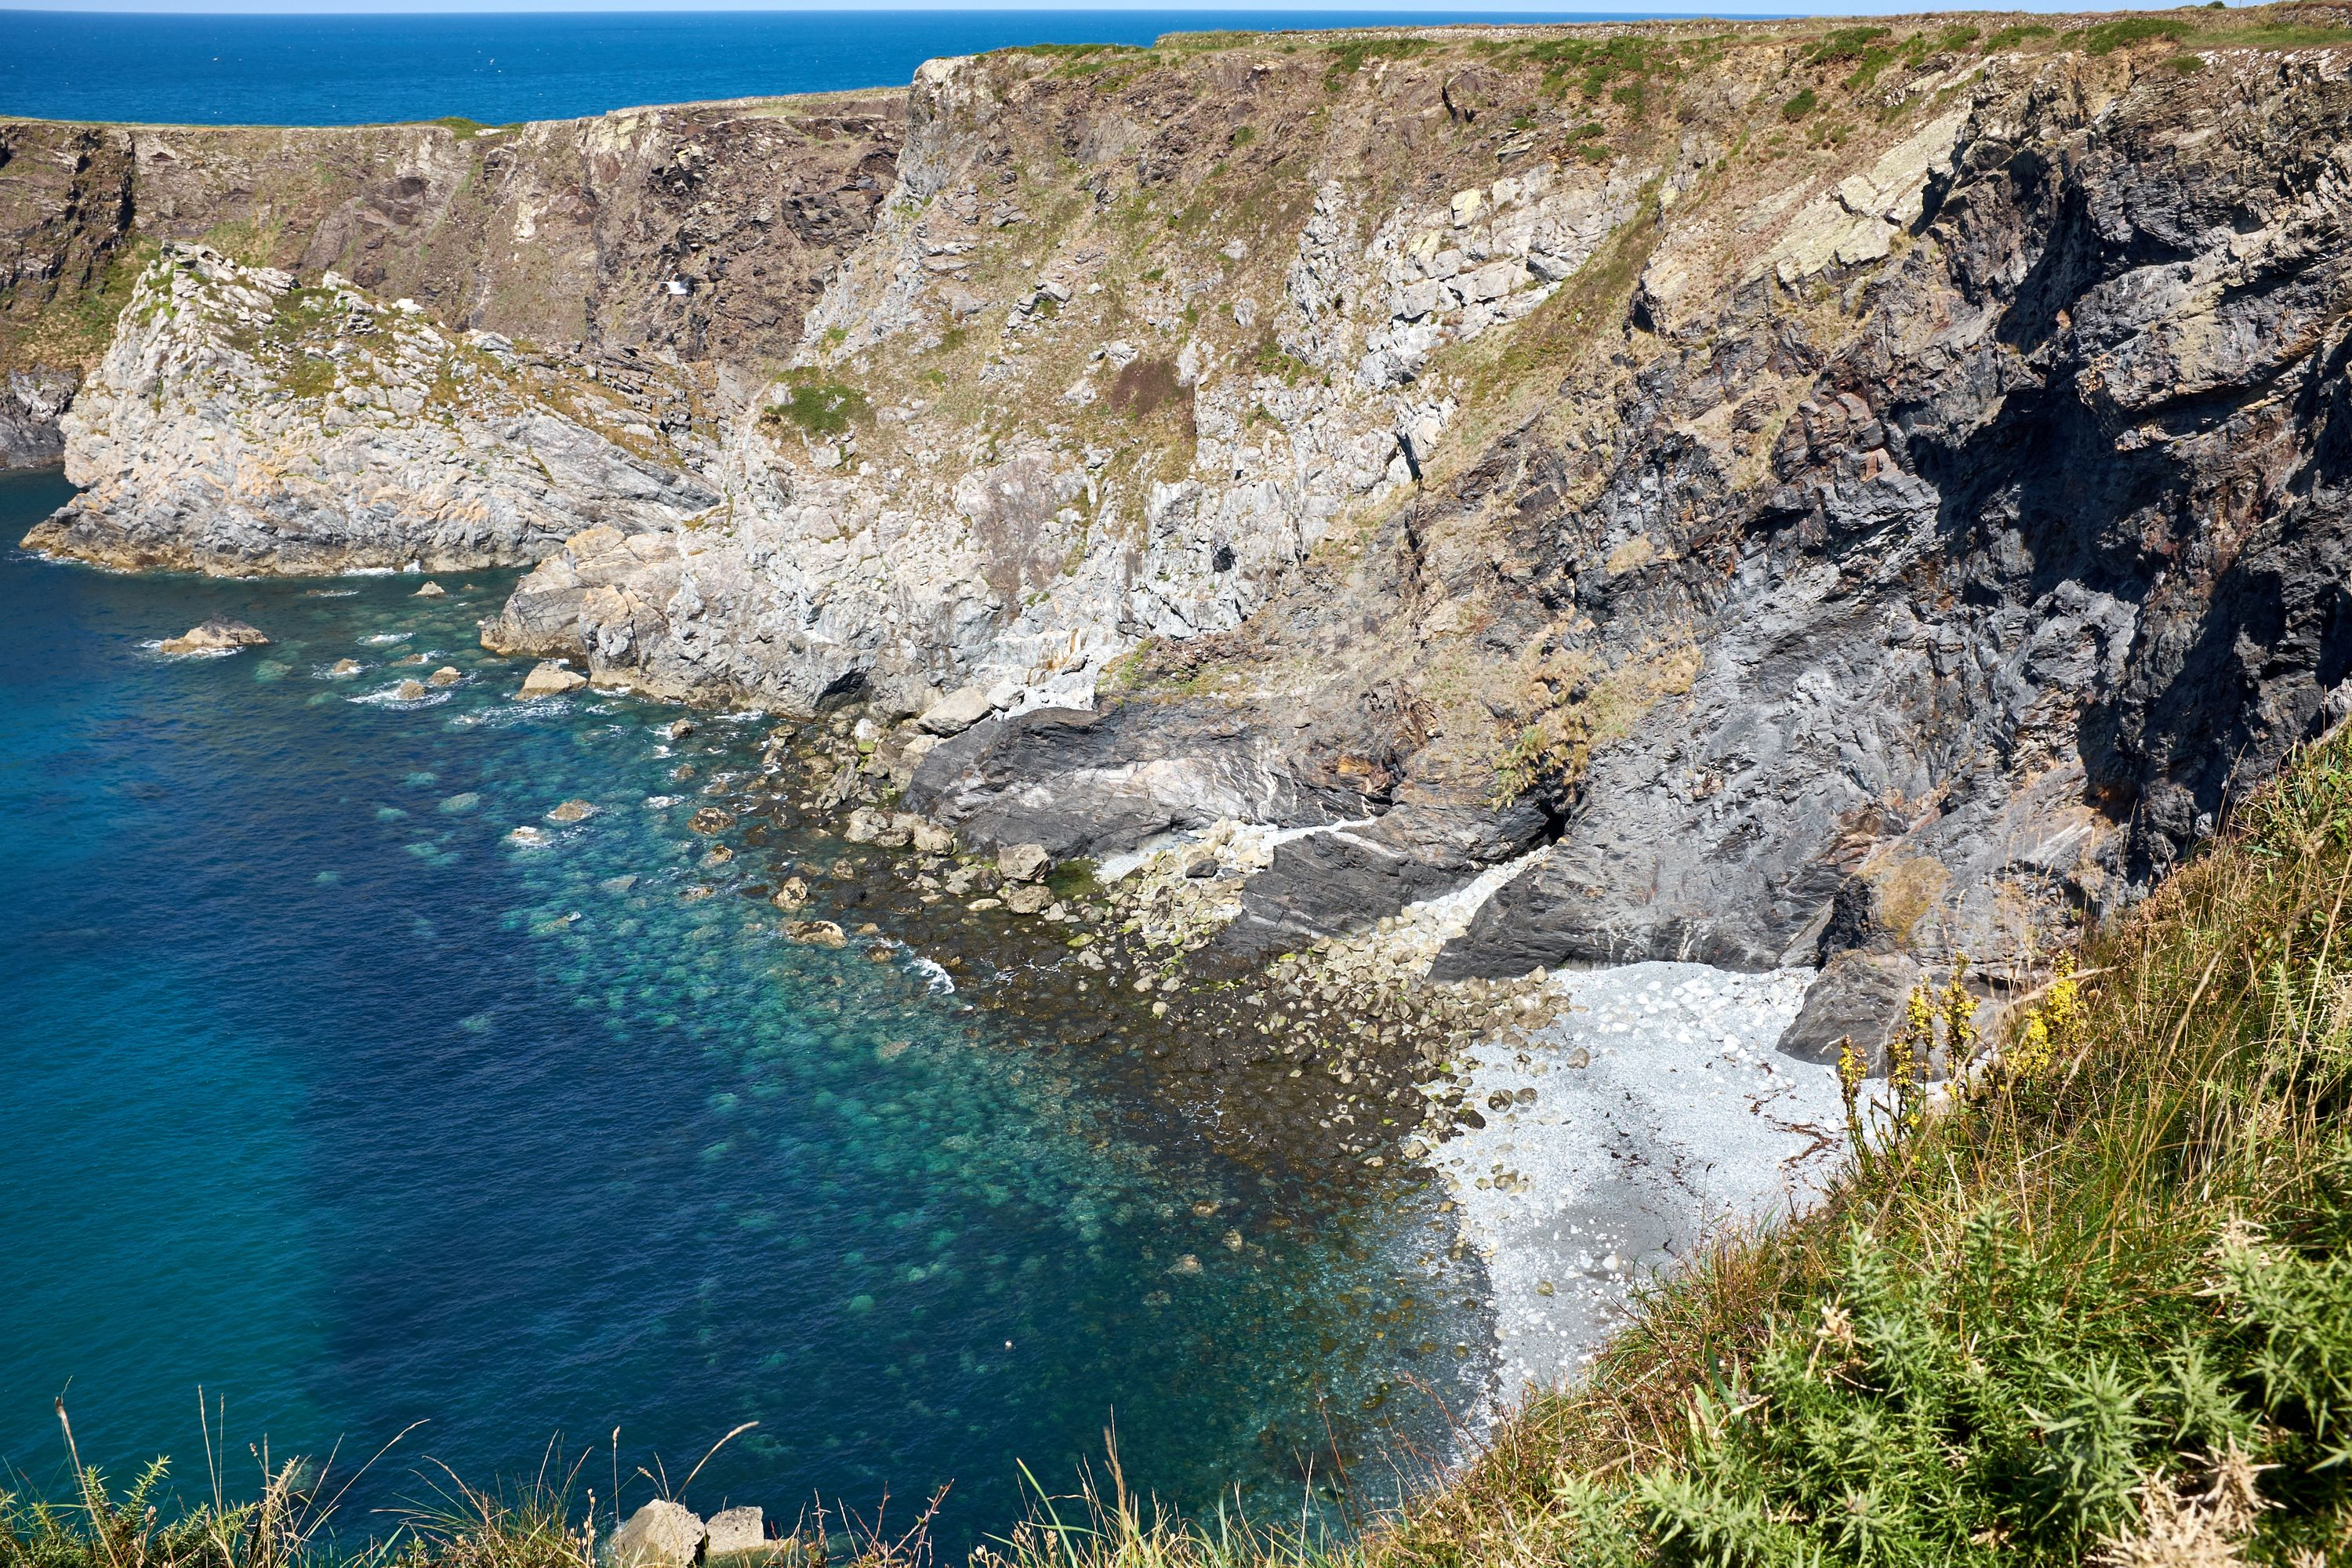 trefin to abercastle coast path